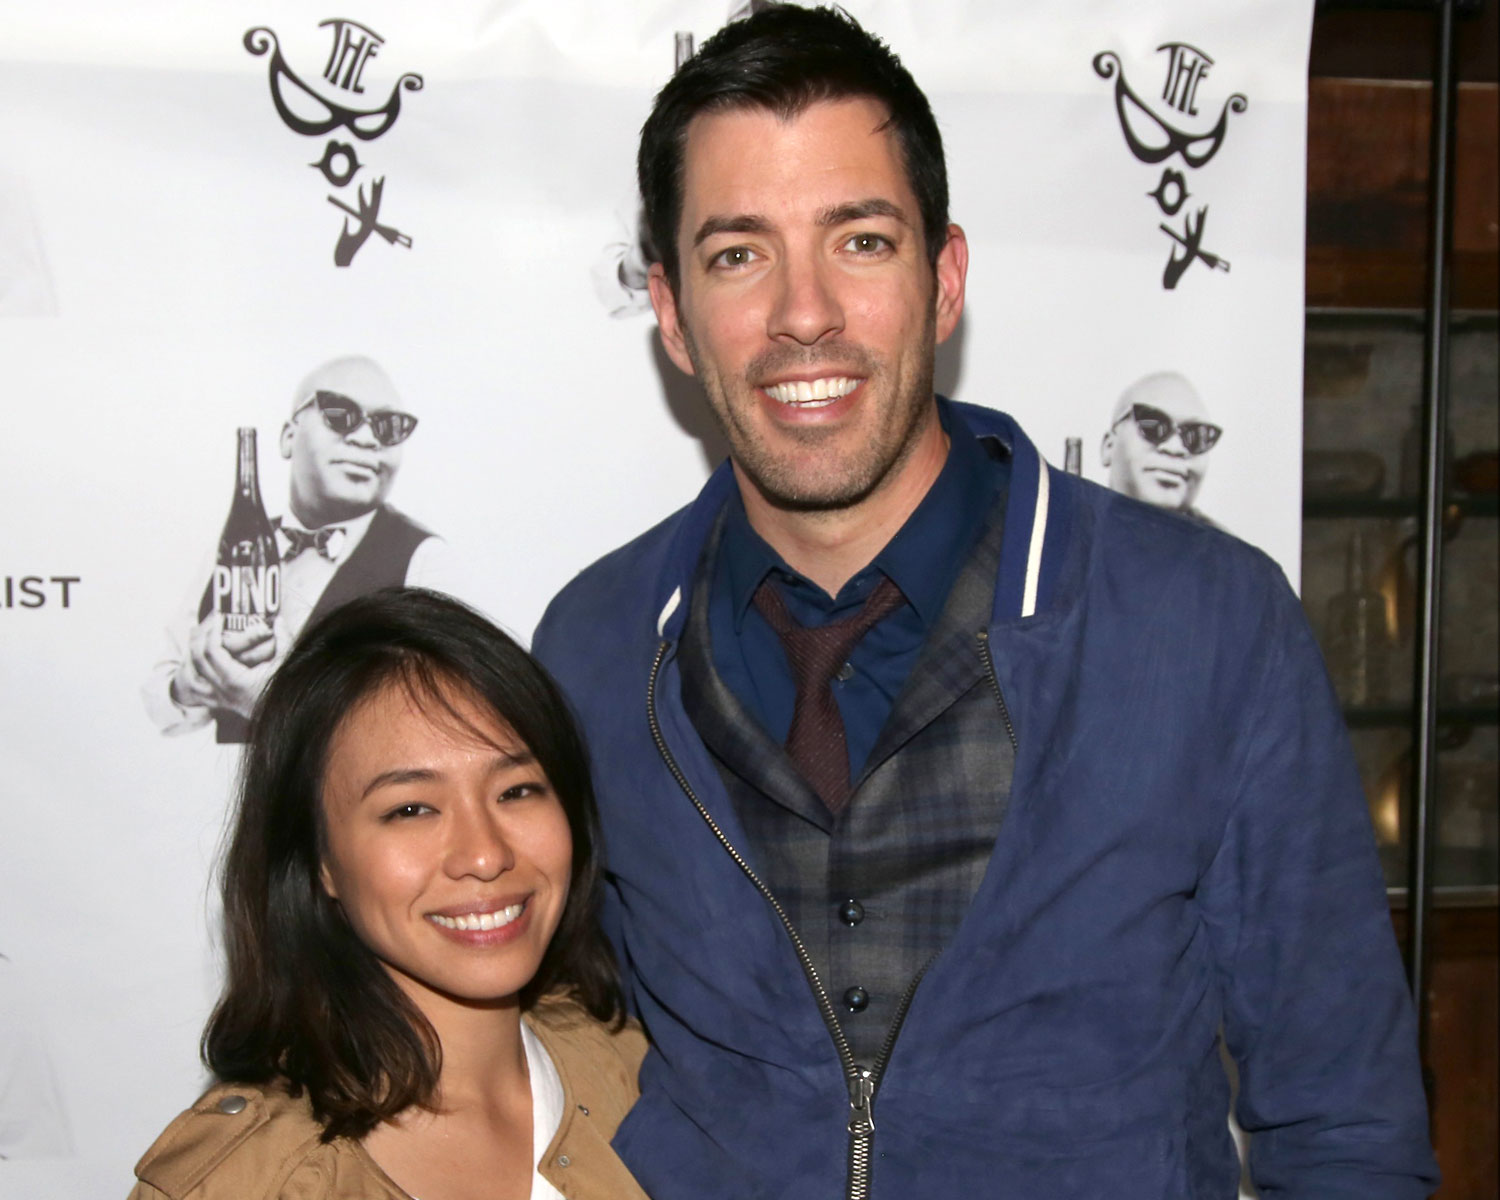 Drew scott and linda phan images Who are the property brothers